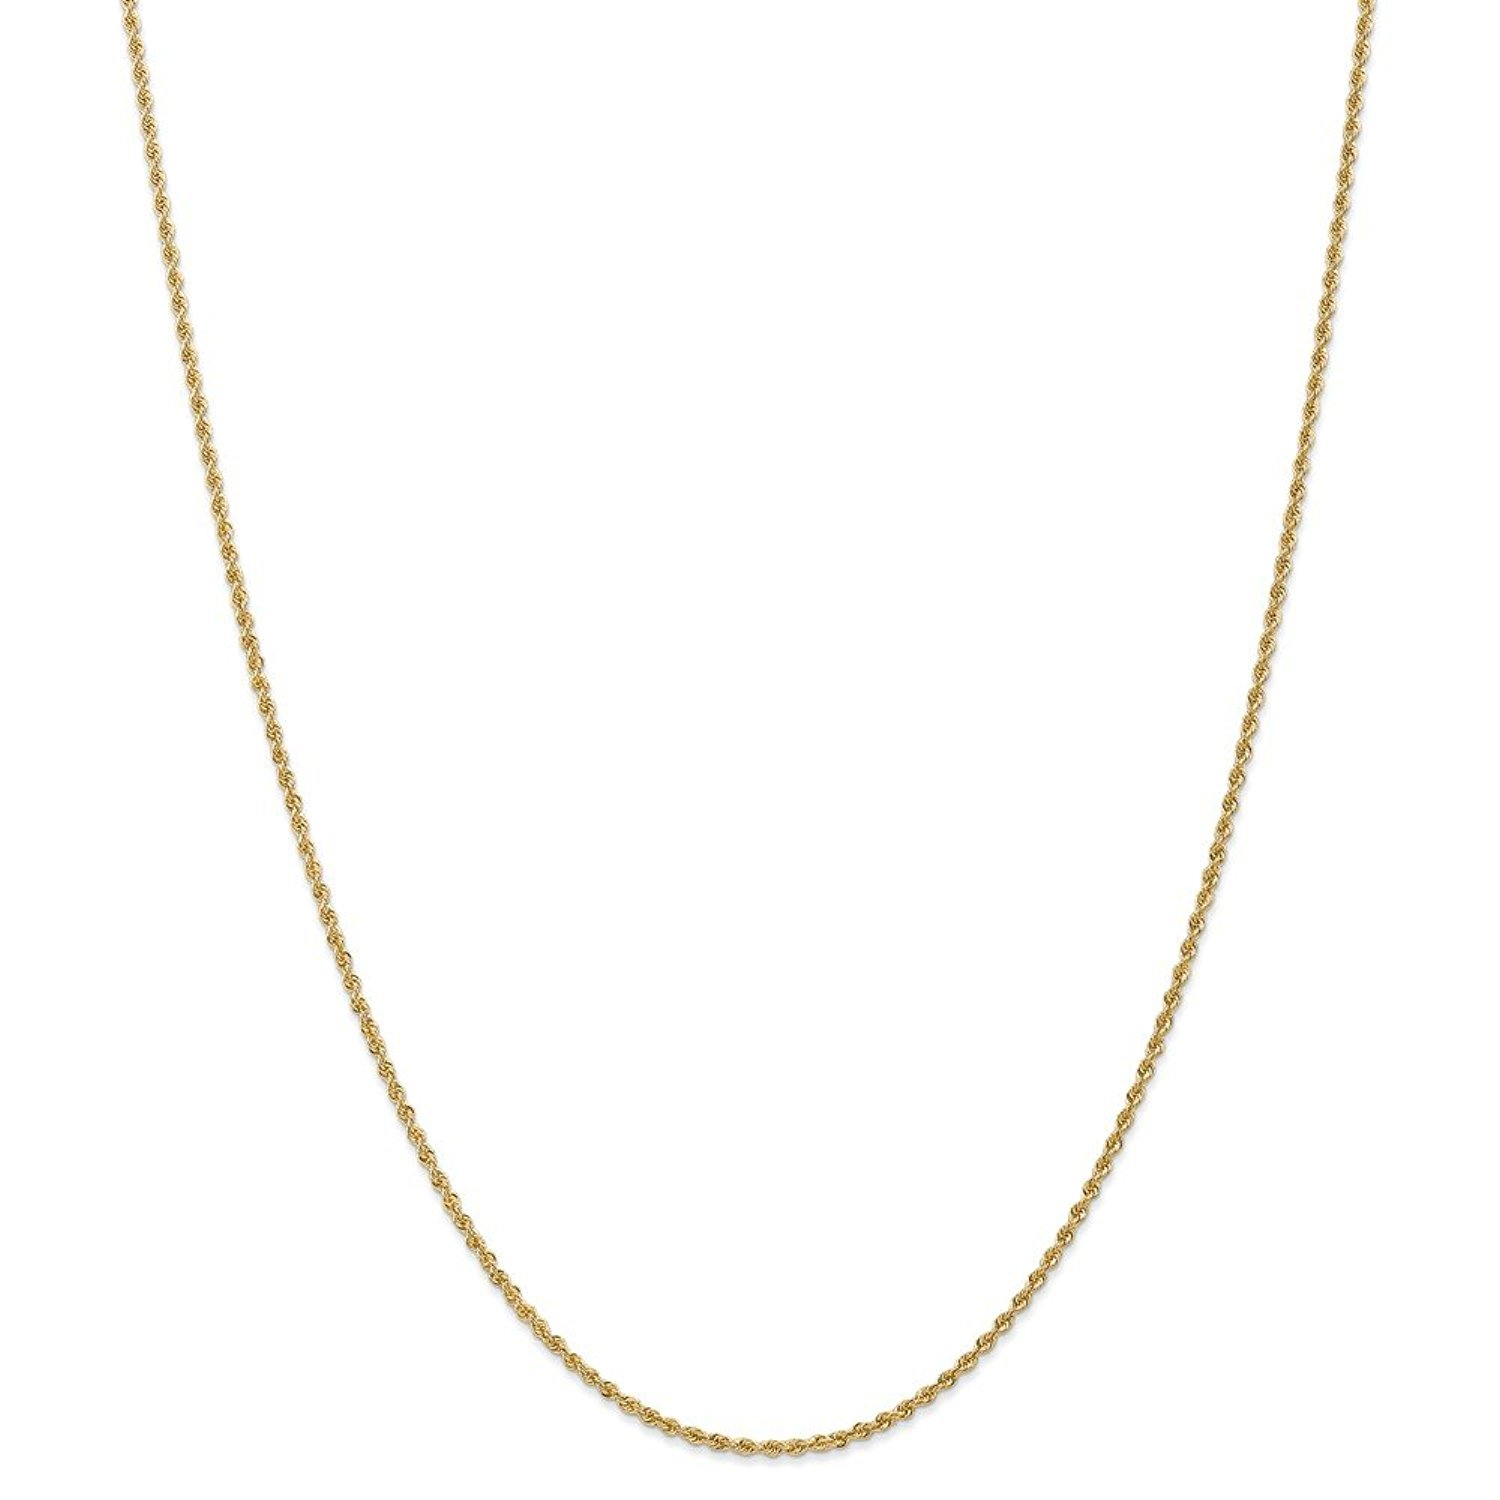 14k Yellow Gold Lobster Claw Closure 1.0mm Solid Rope Chain Bracelet - Length Options: 7 9